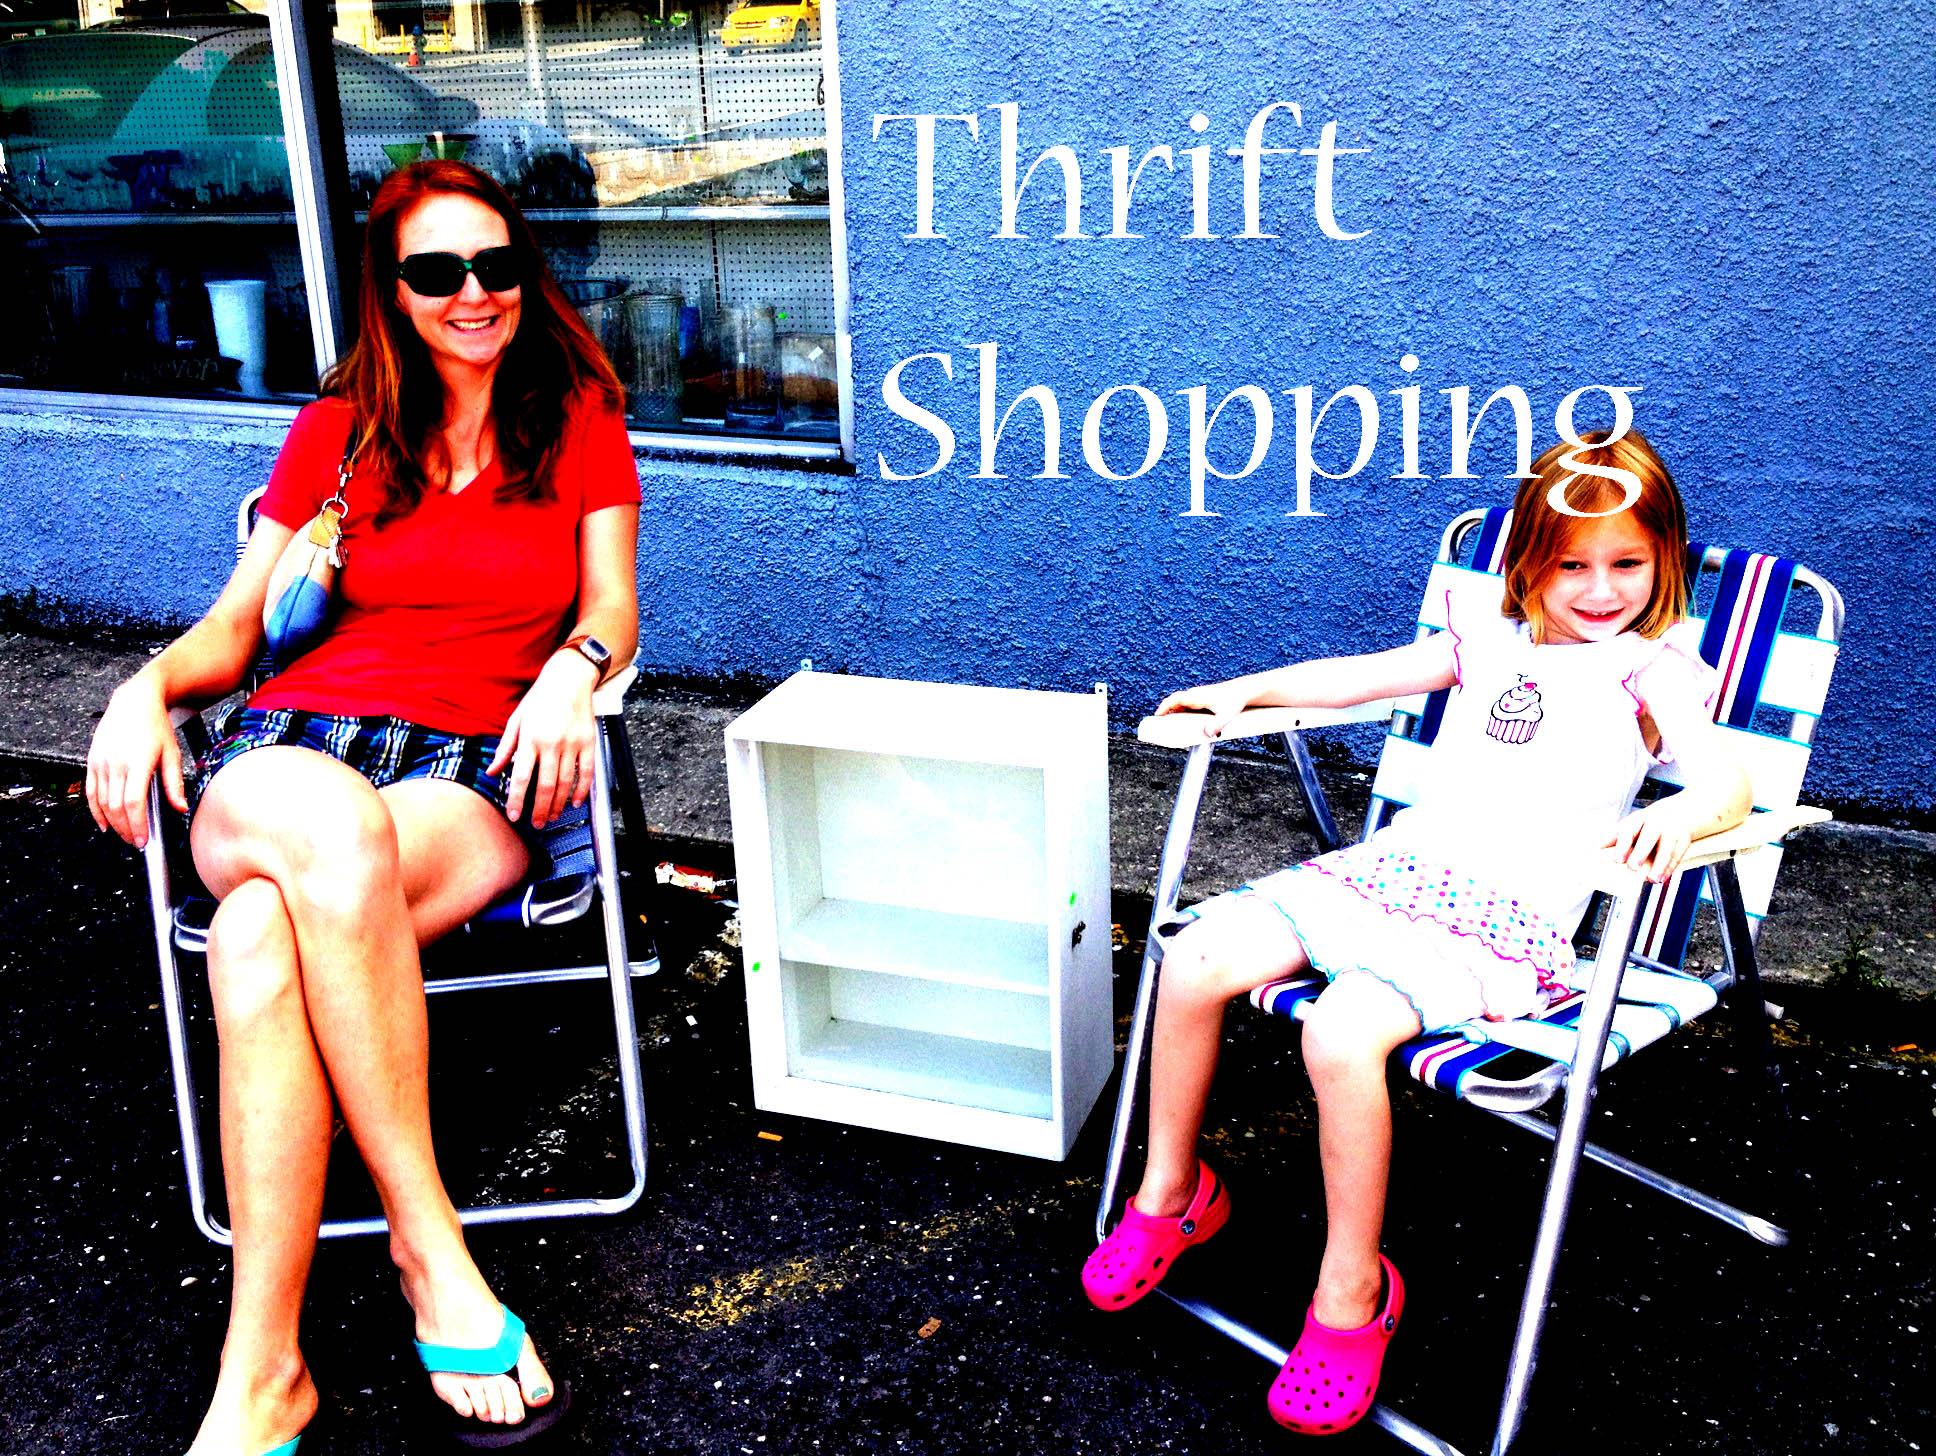 Thrift Shopping at the Shore